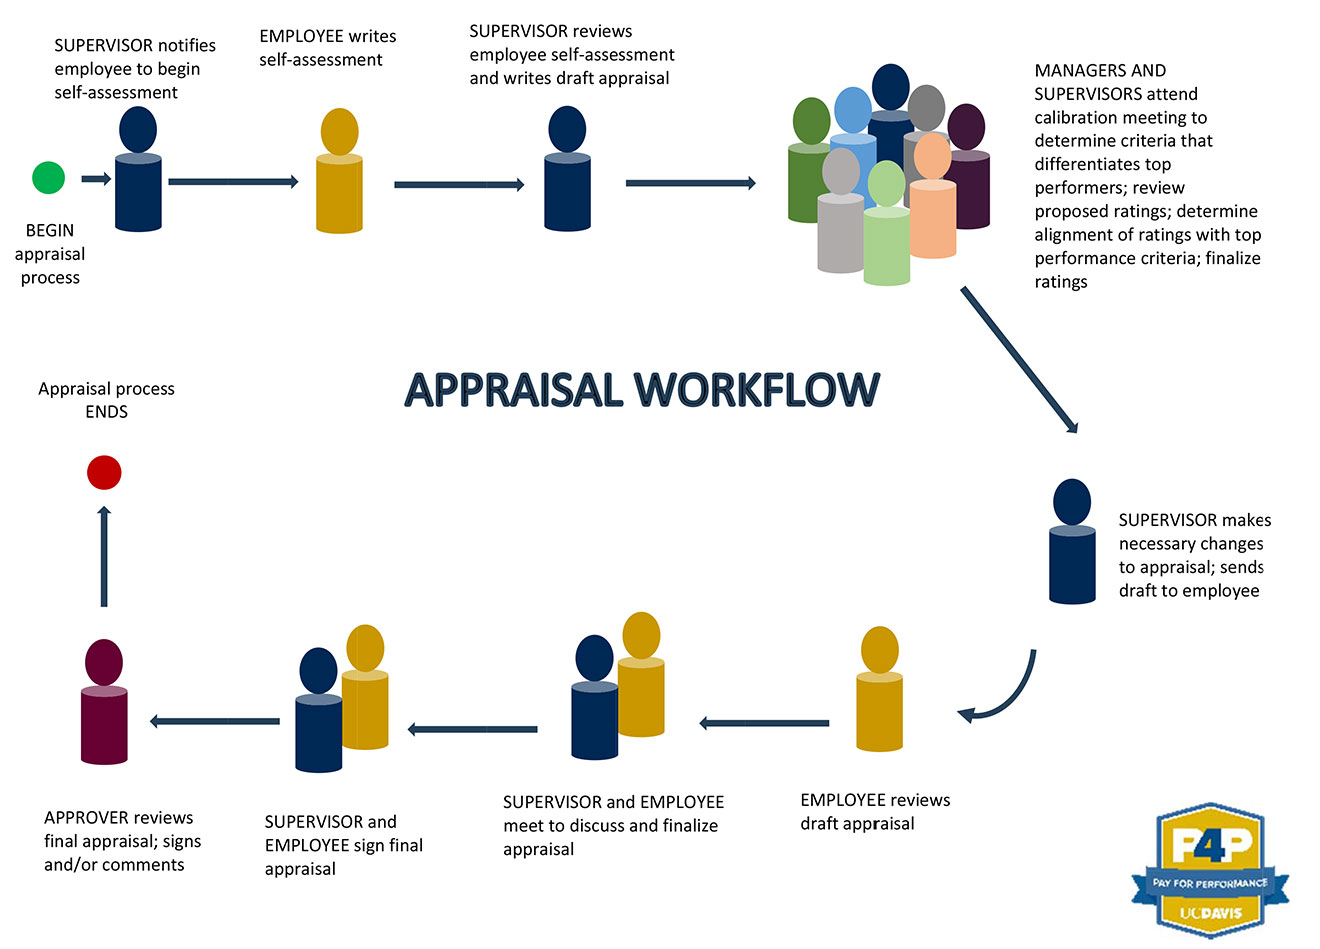 diagram showing the different processes of the annual appraisal workflow